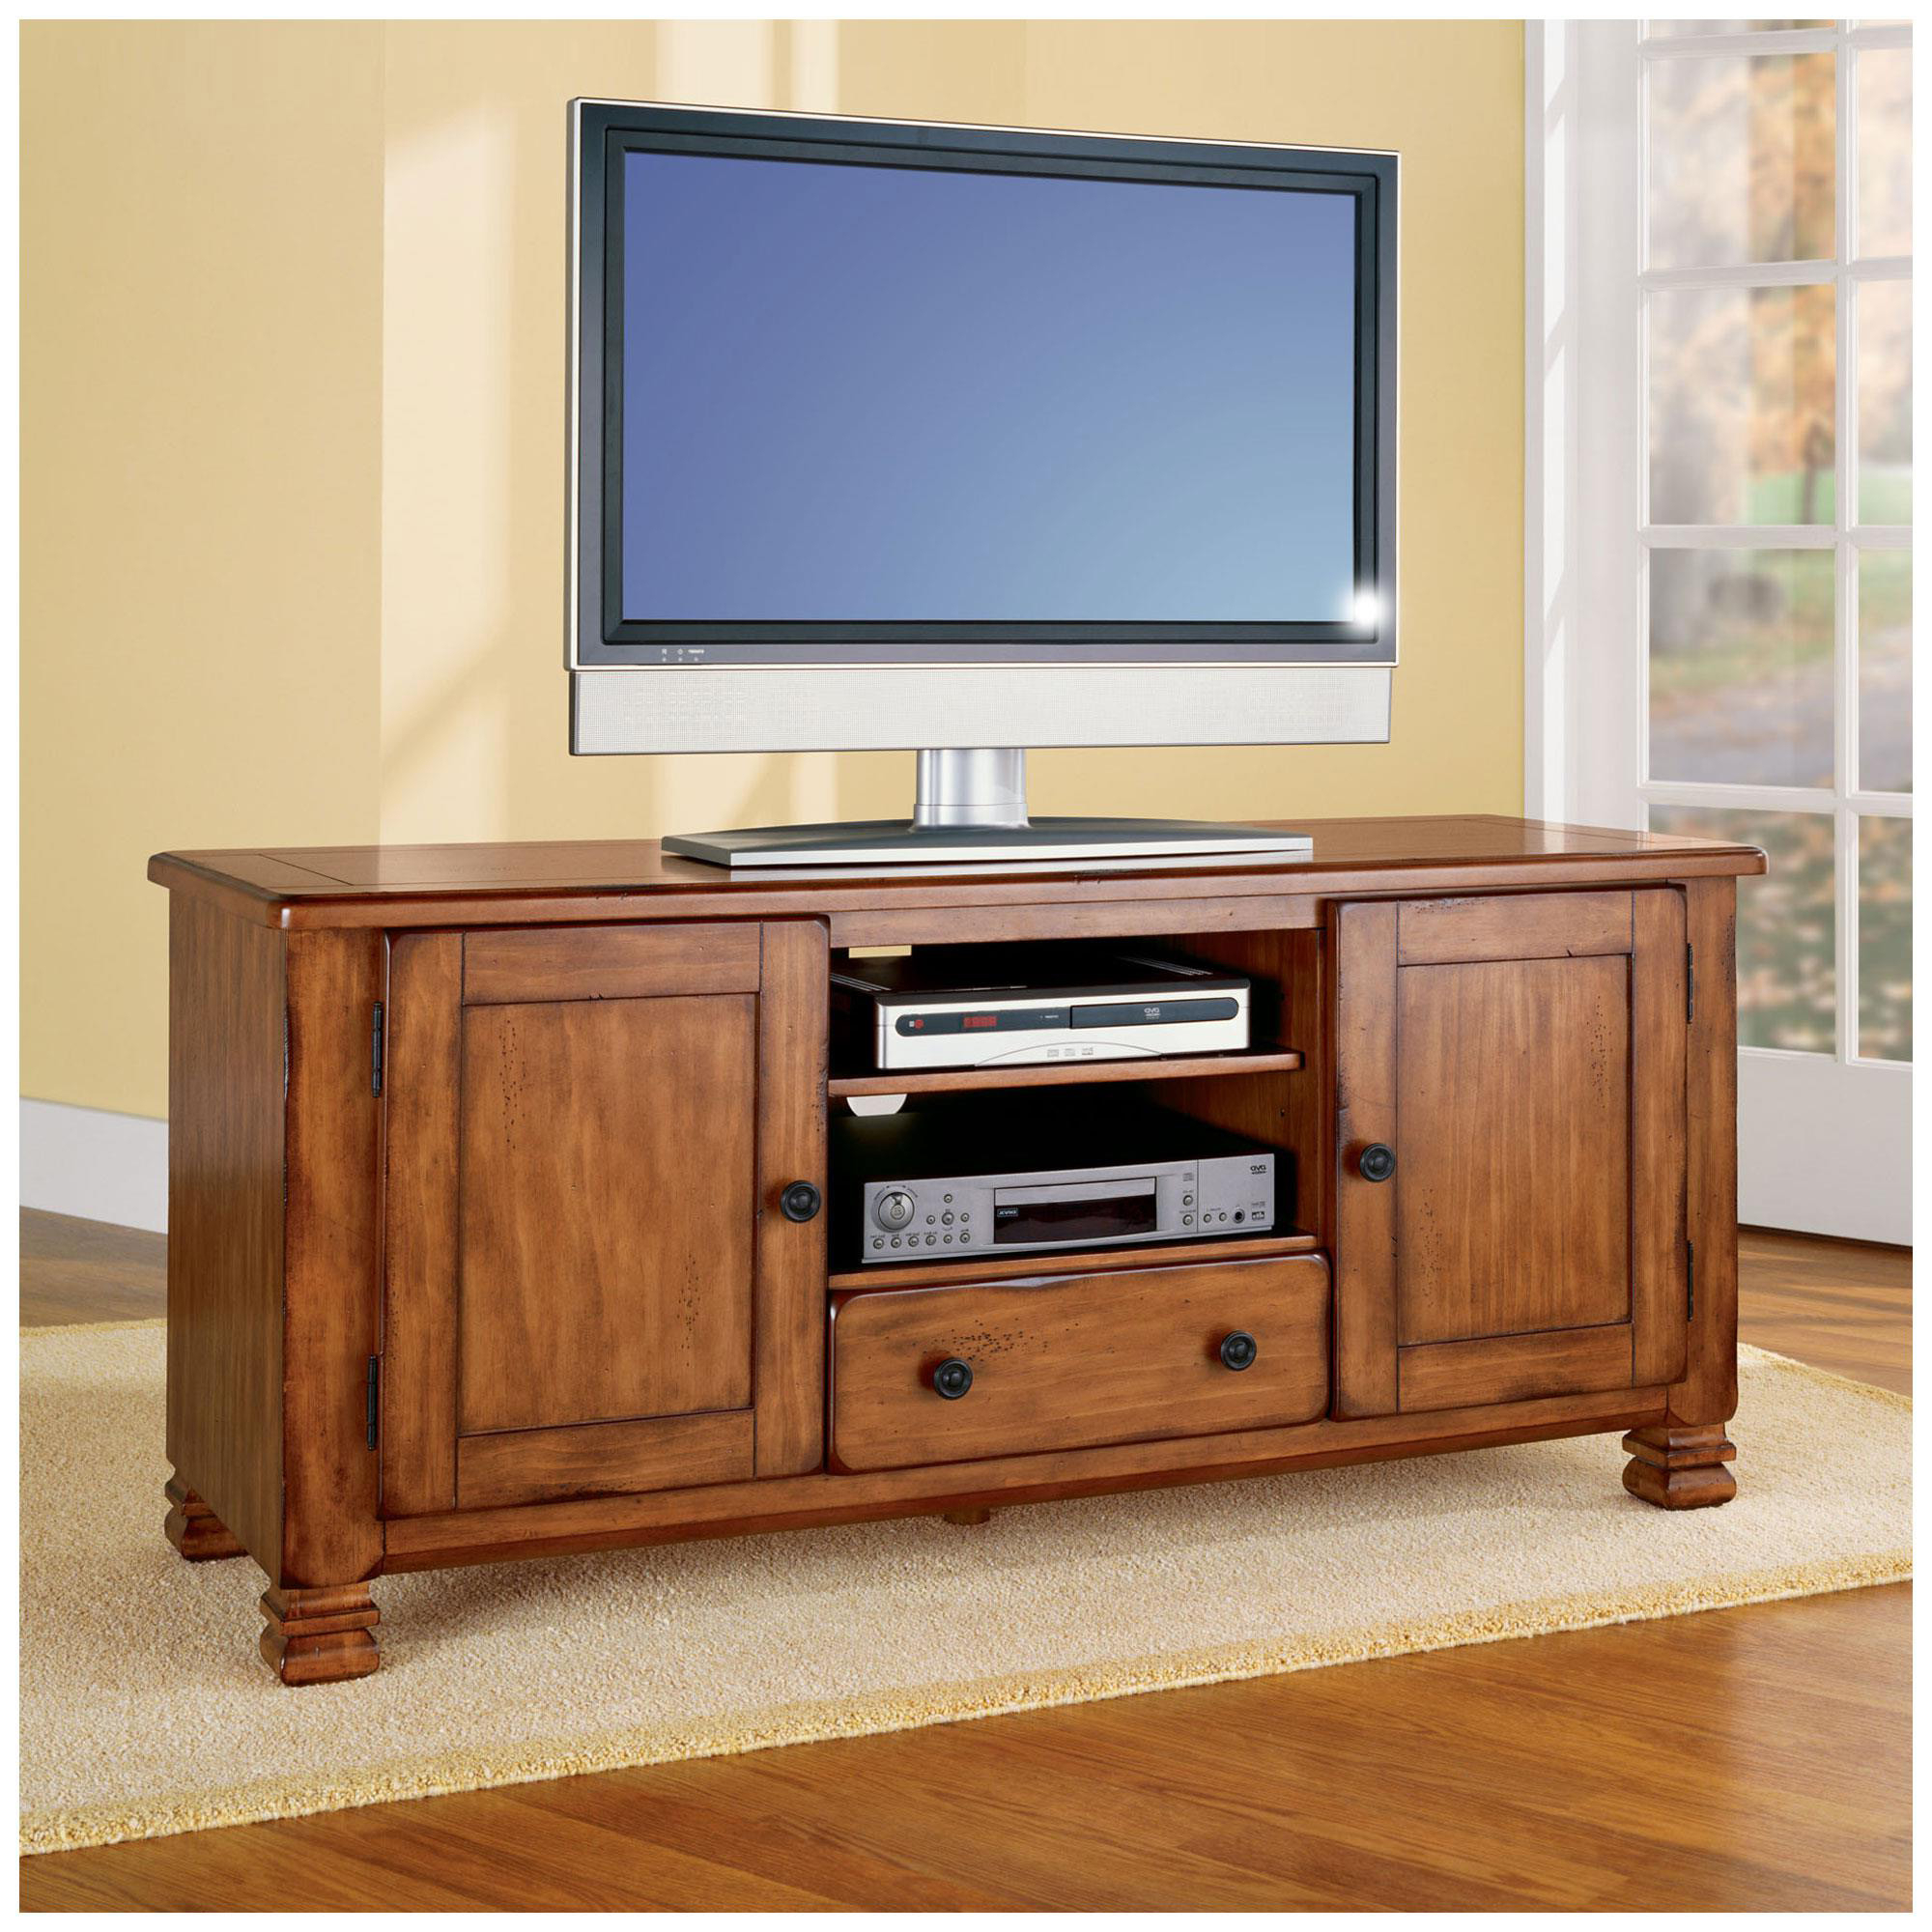 Fashionable Corner Oak Tv Stands For Flat Screen With Regard To Amish Corner Tv Stand Solid Wood Console Mission Style Stands For (View 10 of 20)